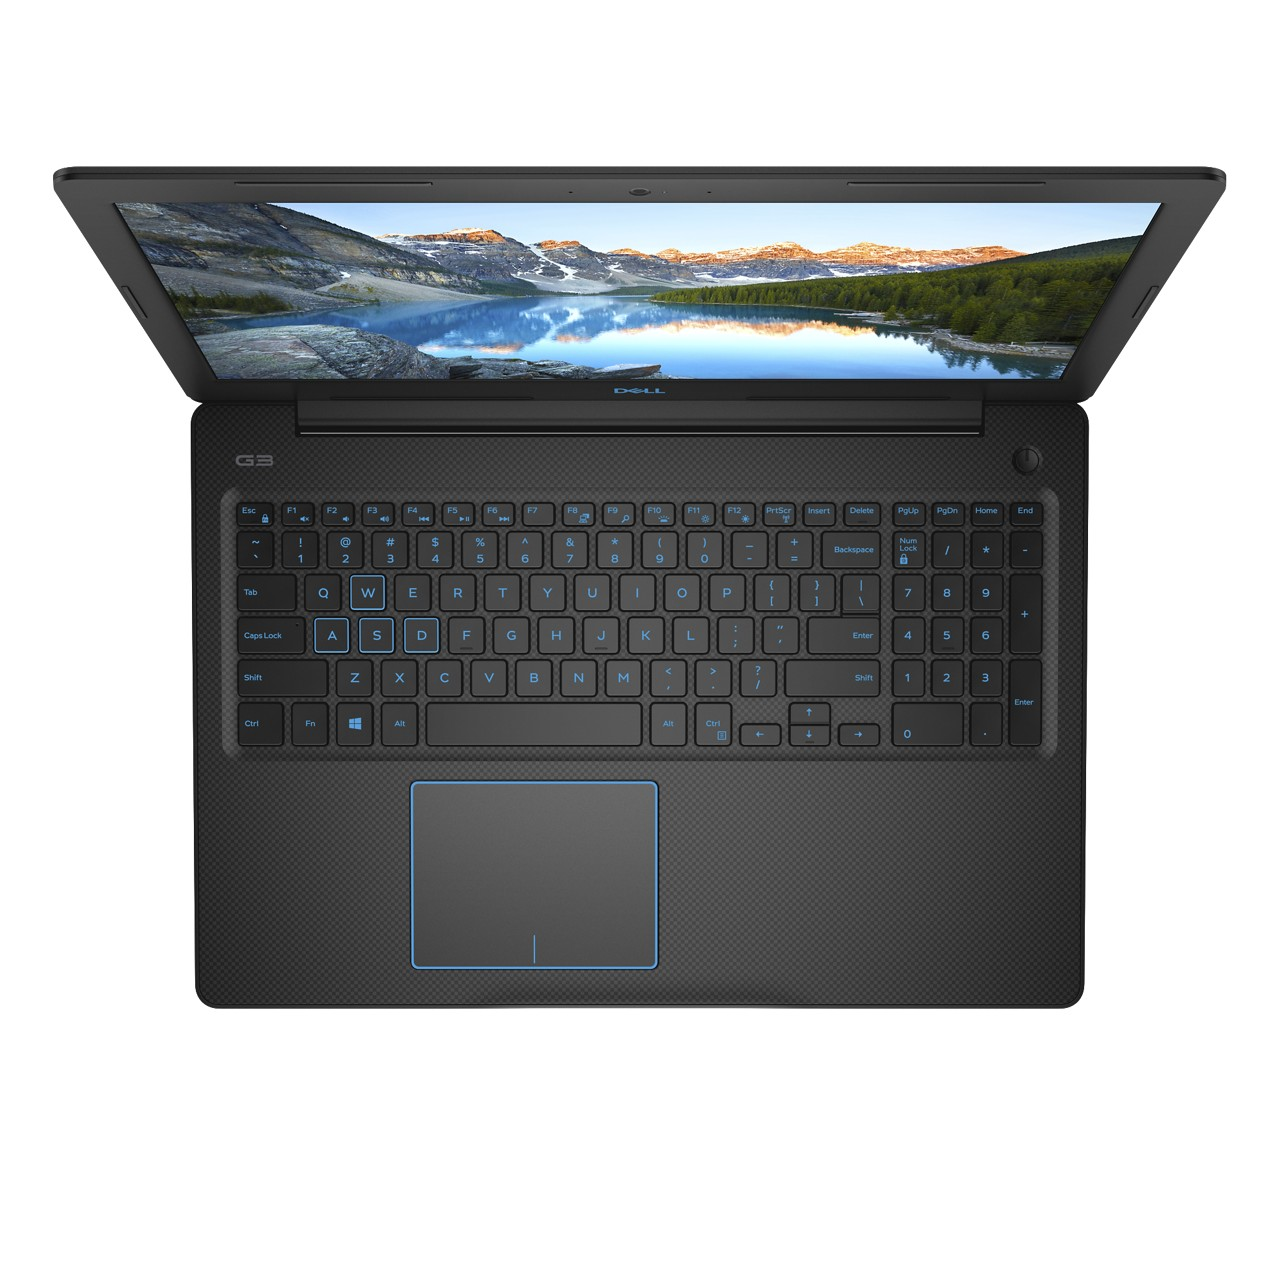 "Dell G3 15 15.6"" FHD Gaming Laptop (Quad Core i5/ 8GB / 256GB SSD)"